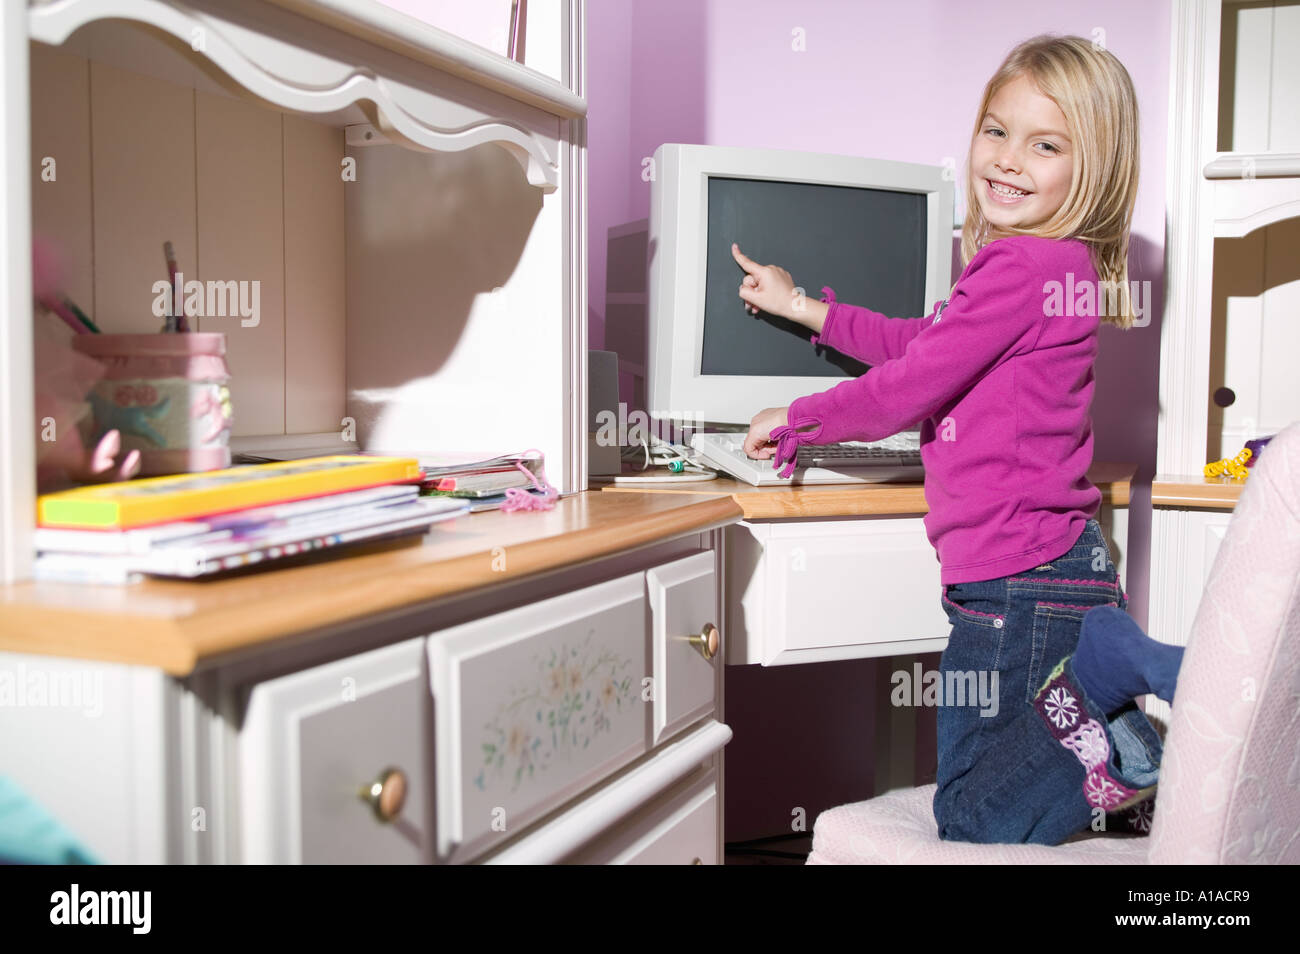 Girl pointing at computer screen Photo Stock